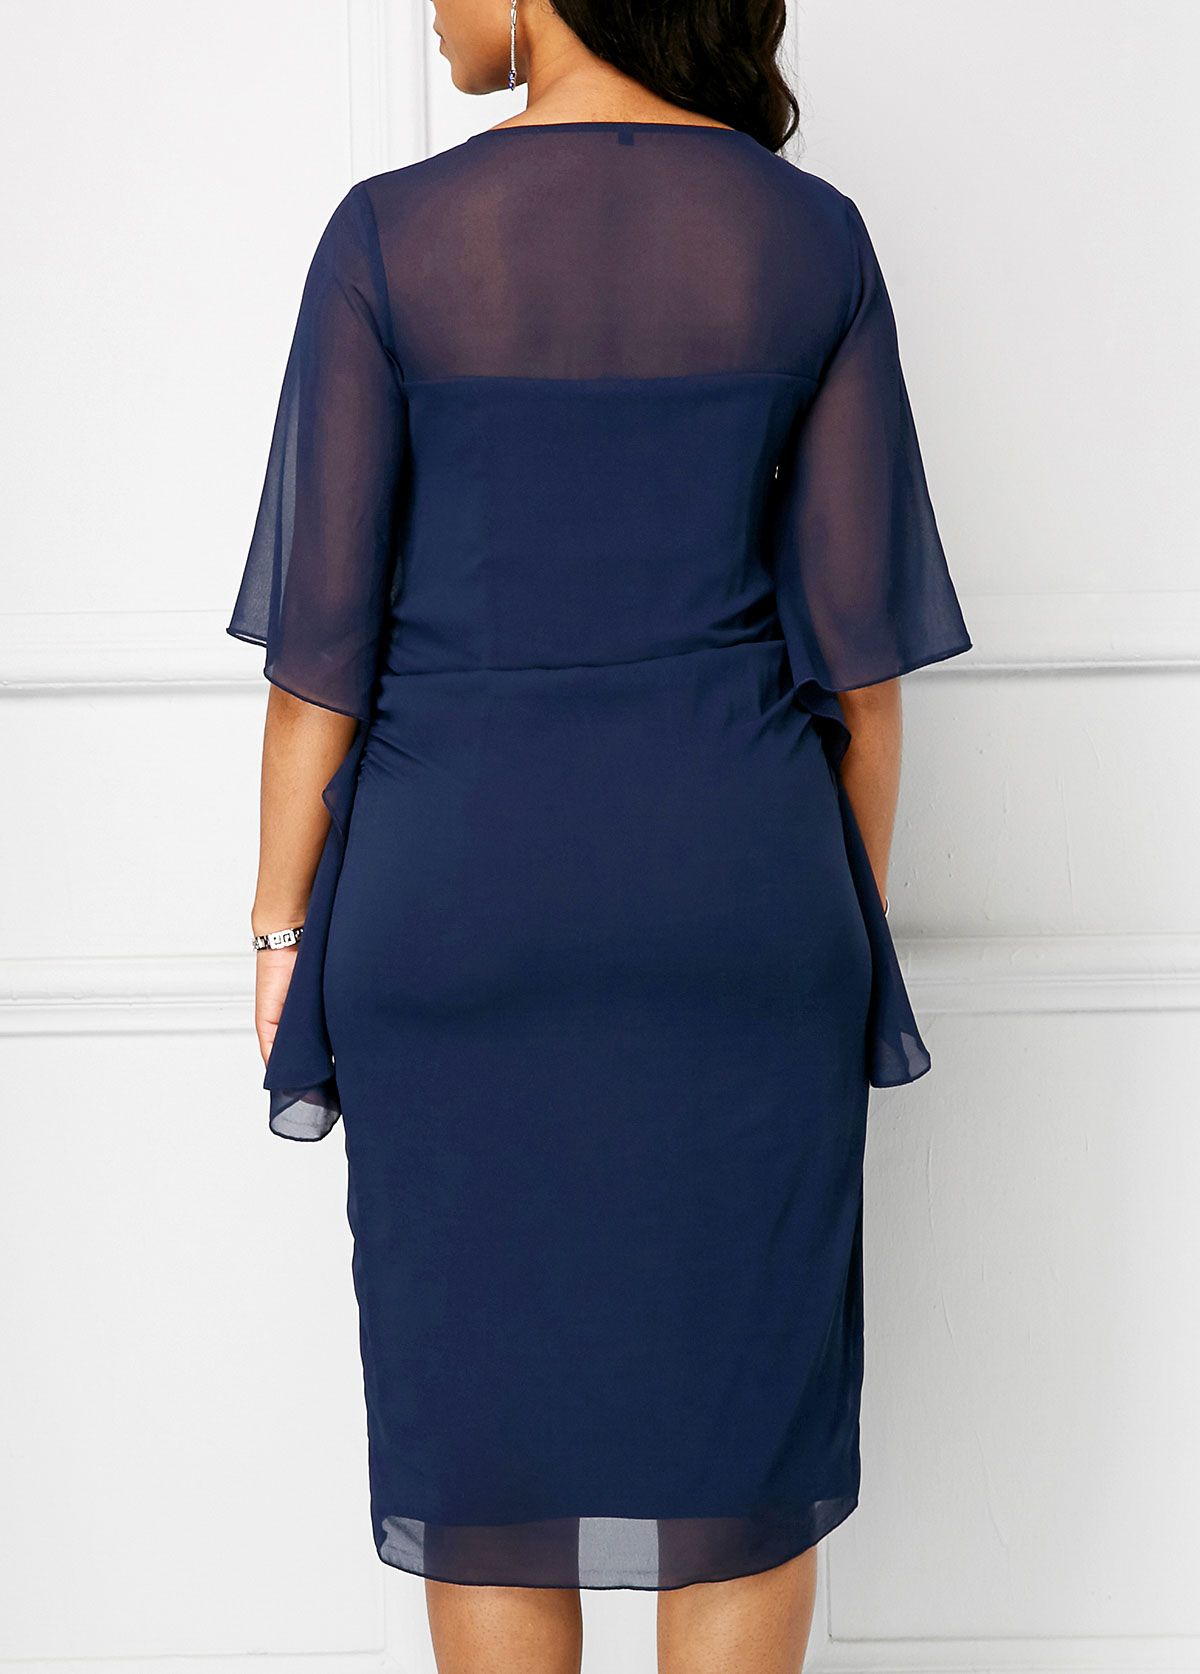 60db905baedde Navy Blue Half Sleeve Chiffon Overlay Dress